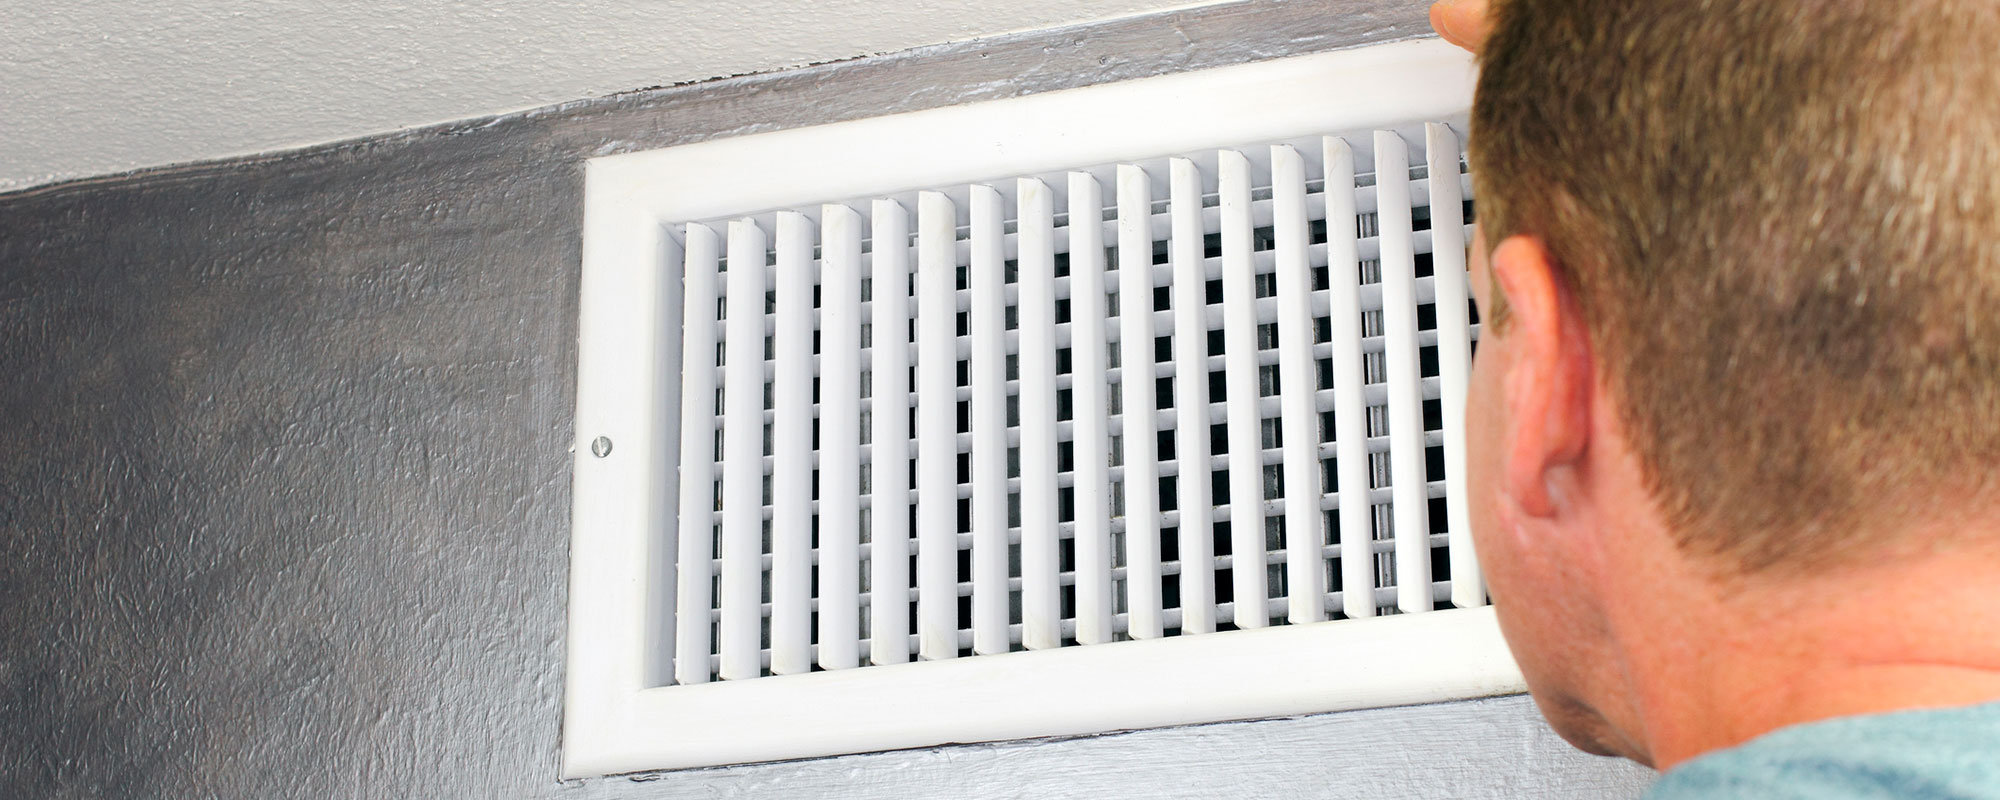 Vent Cleaning Chimney Sweep Amp Masonry Services